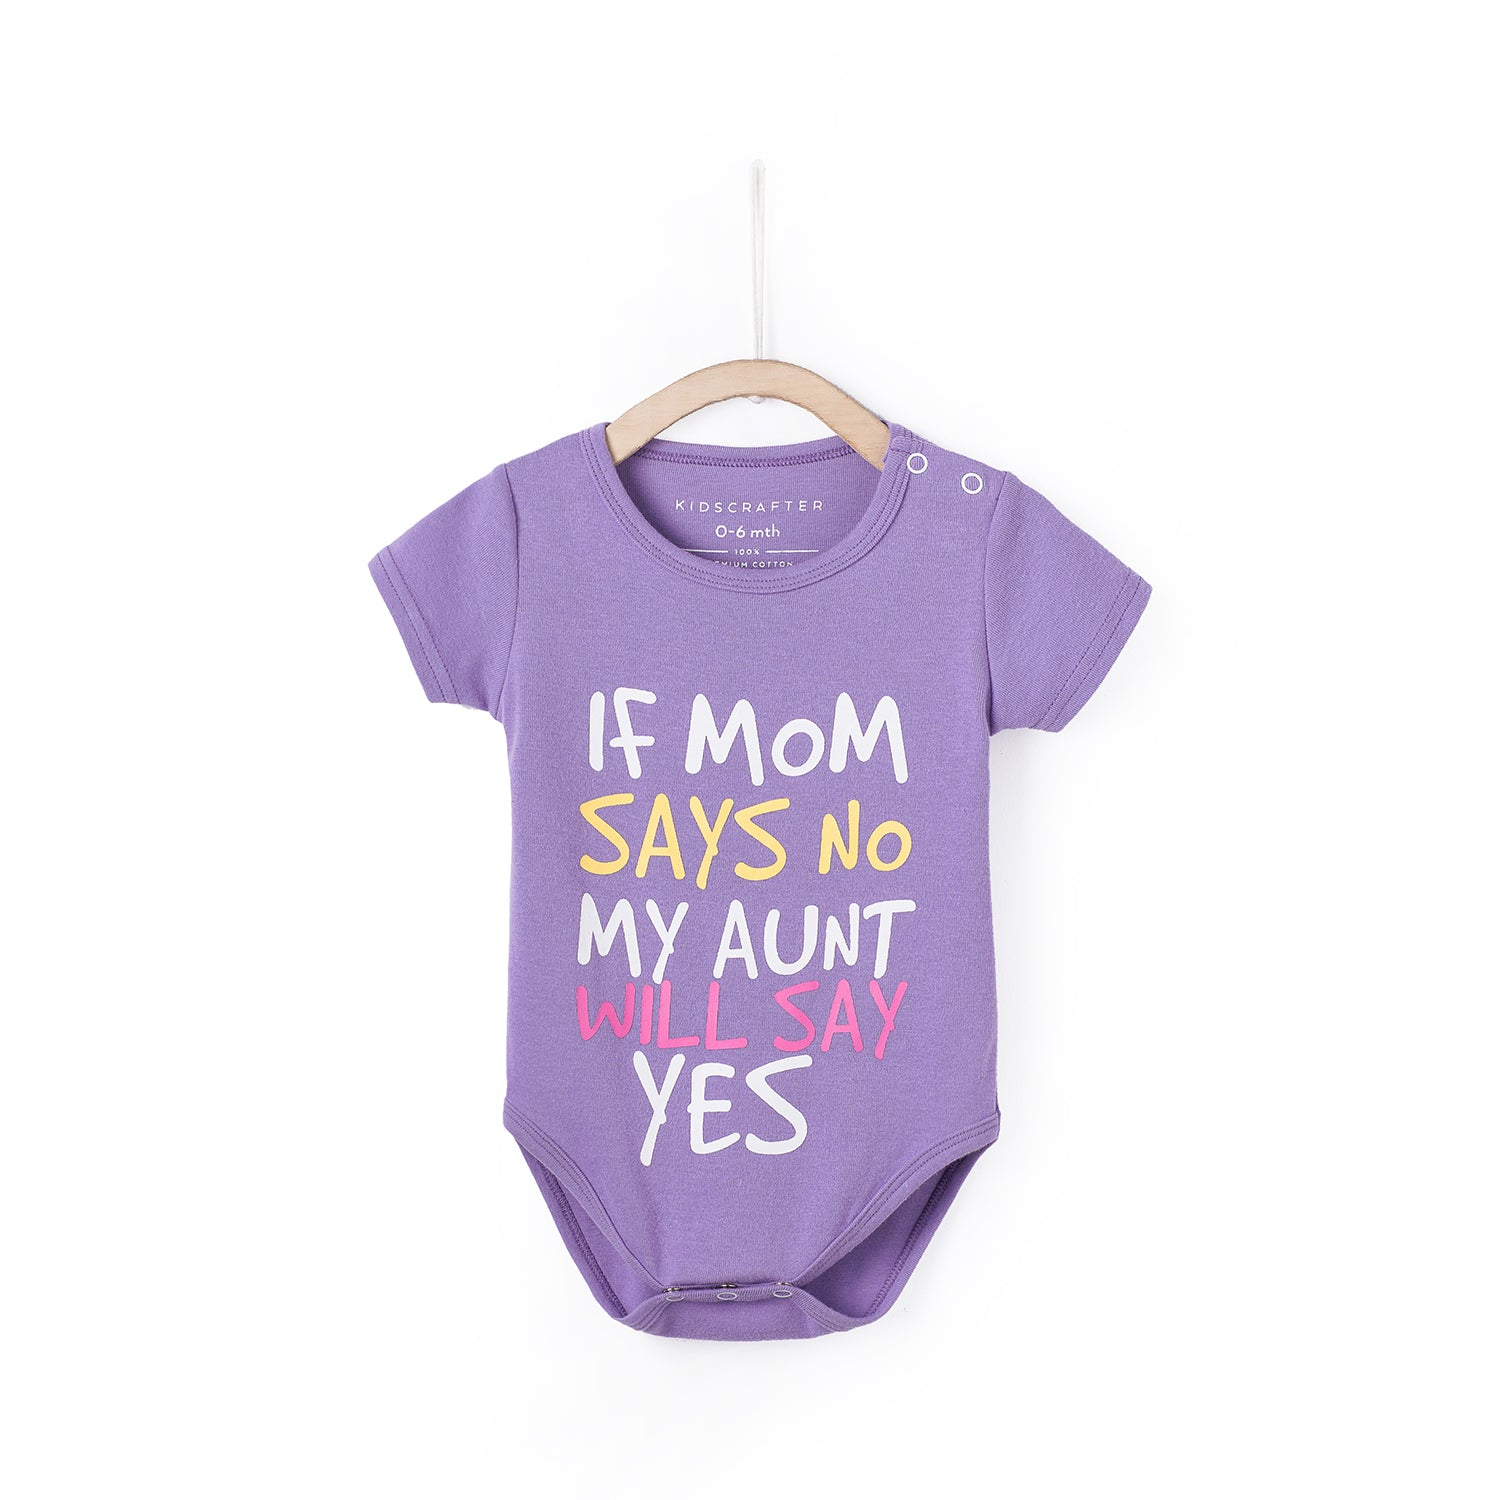 If Mom Says No My Aunt Will Say Yes Purple – KIDSCRAFTER